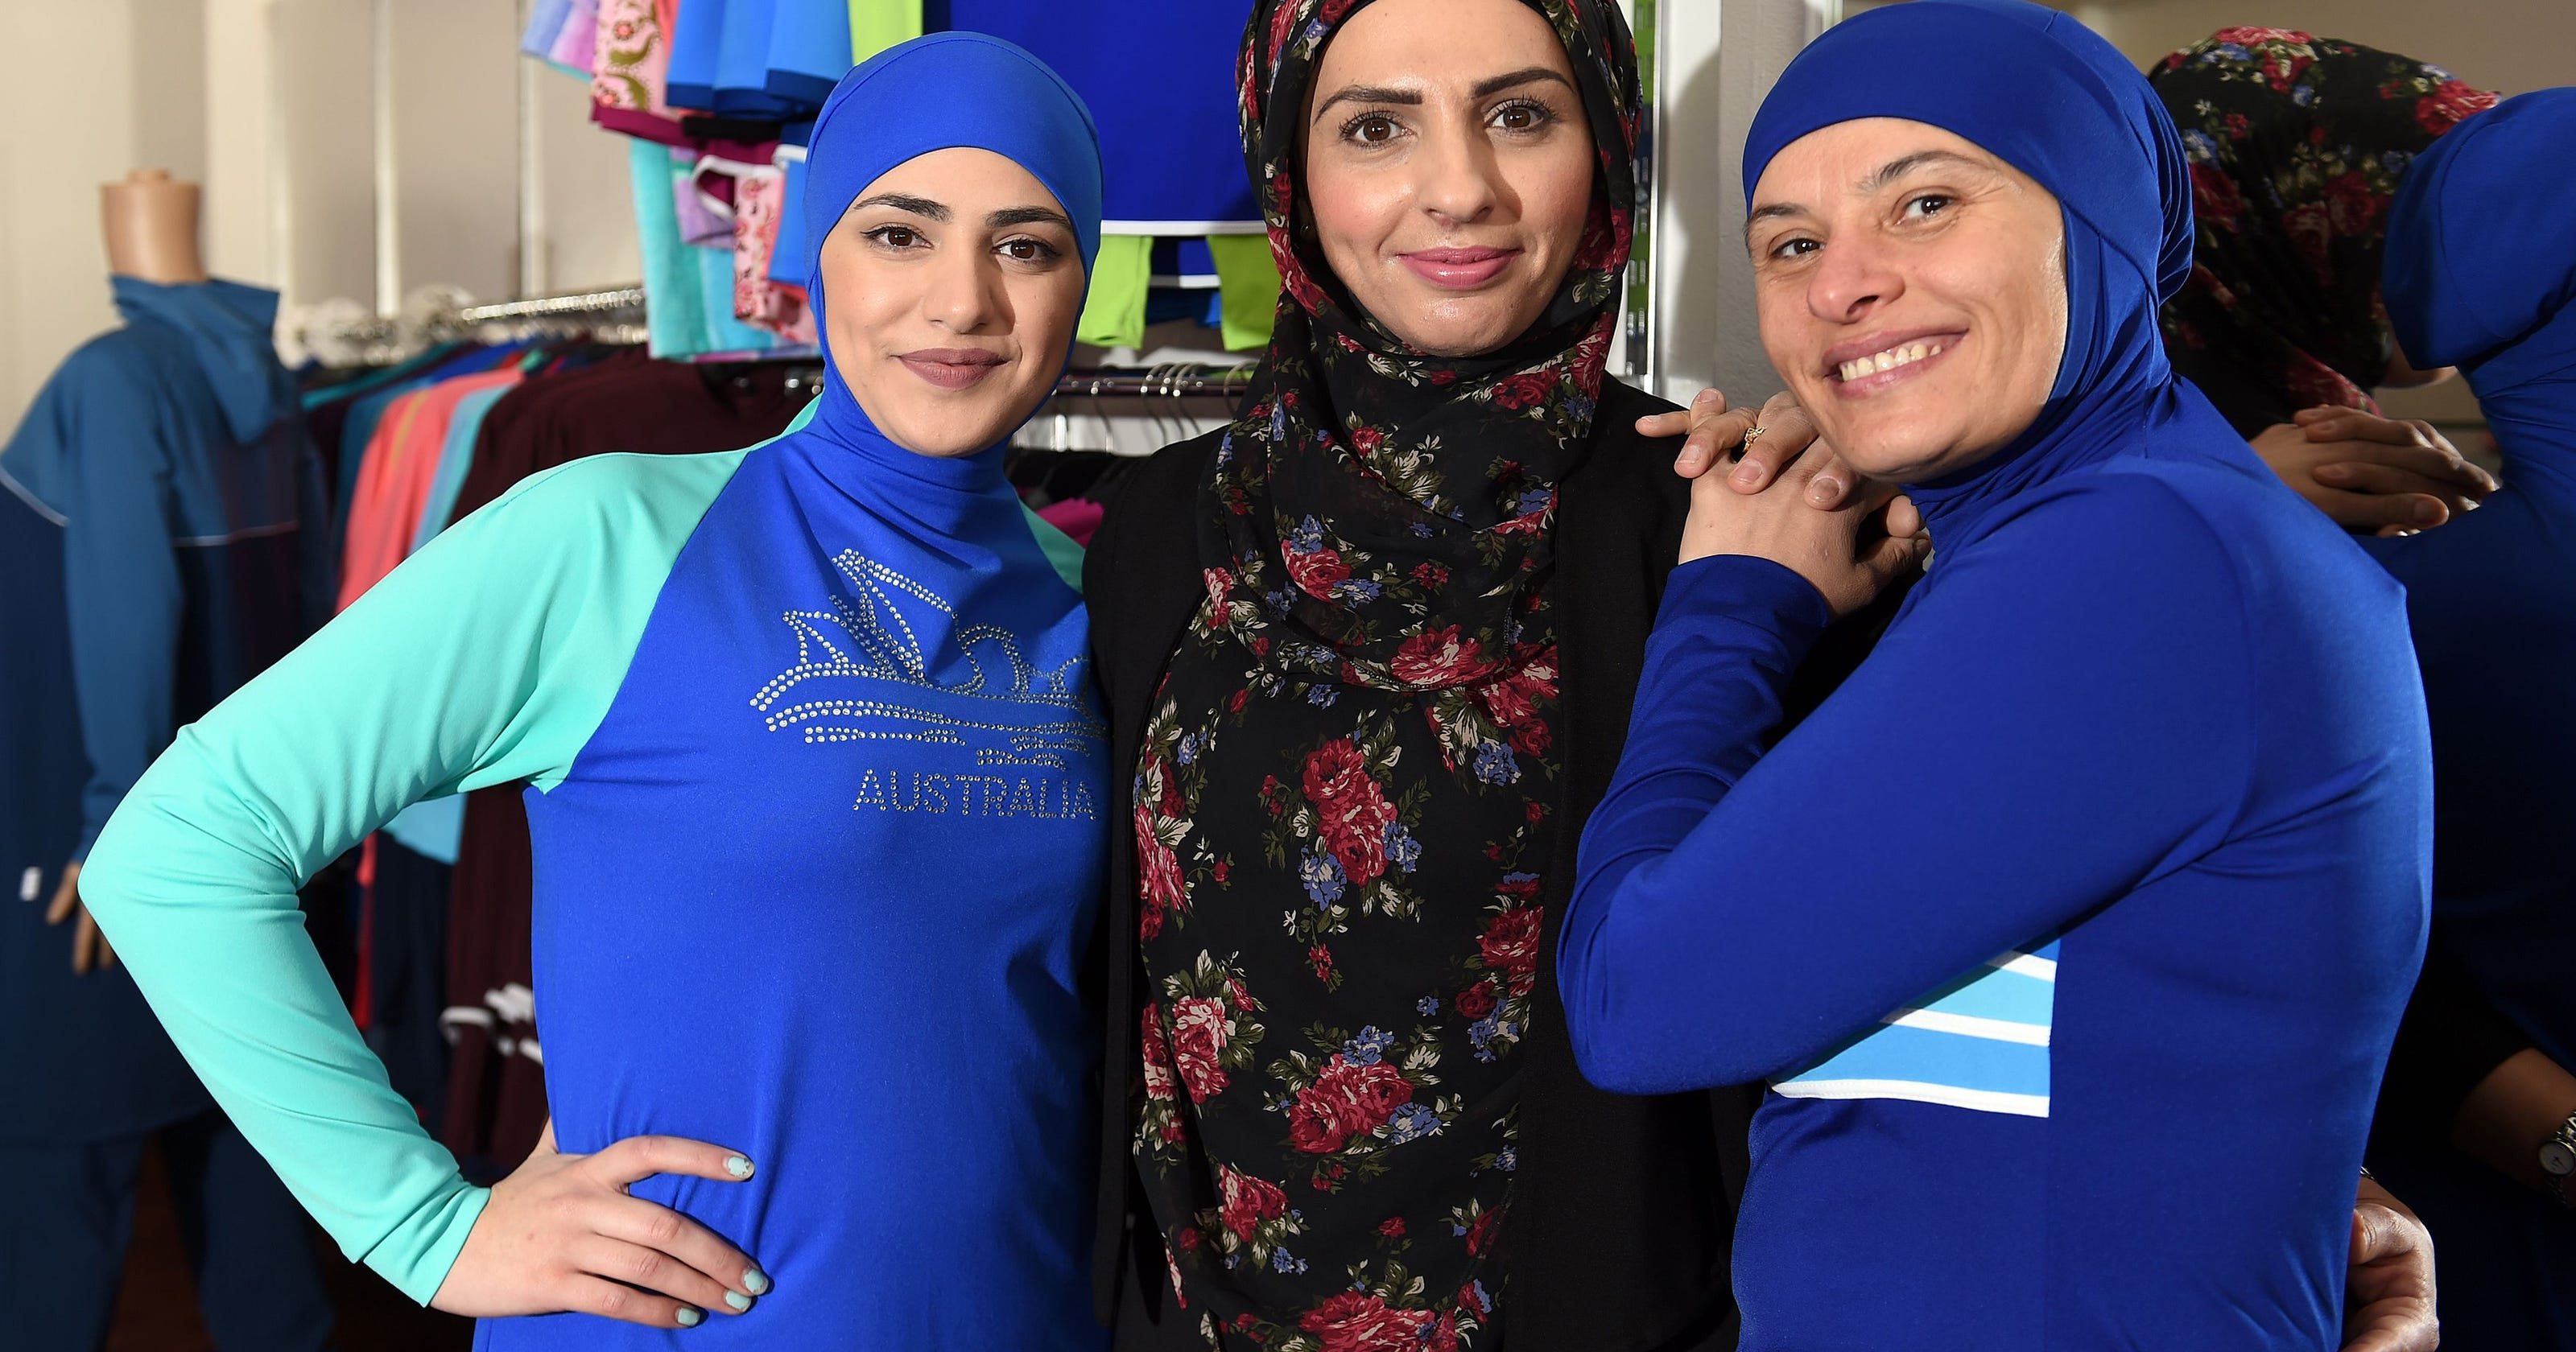 Bikini begone: How different religions deal with modesty at beaches